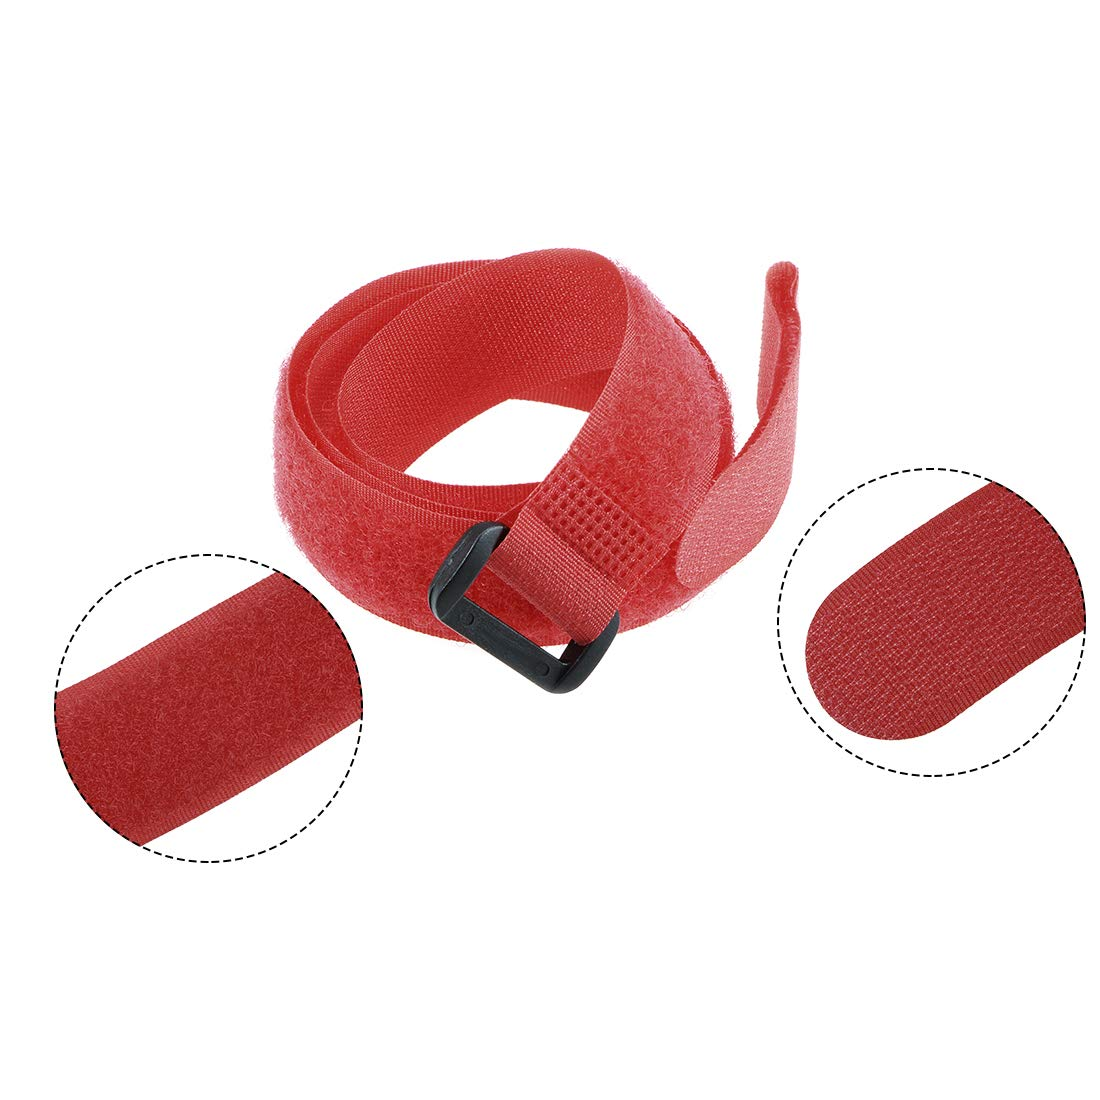 uxcell 5PCS RC Lipo Battery Straps 20x550mm Nylon Kundled Straps Non-Slip for Electronic Wires and Other Items Red